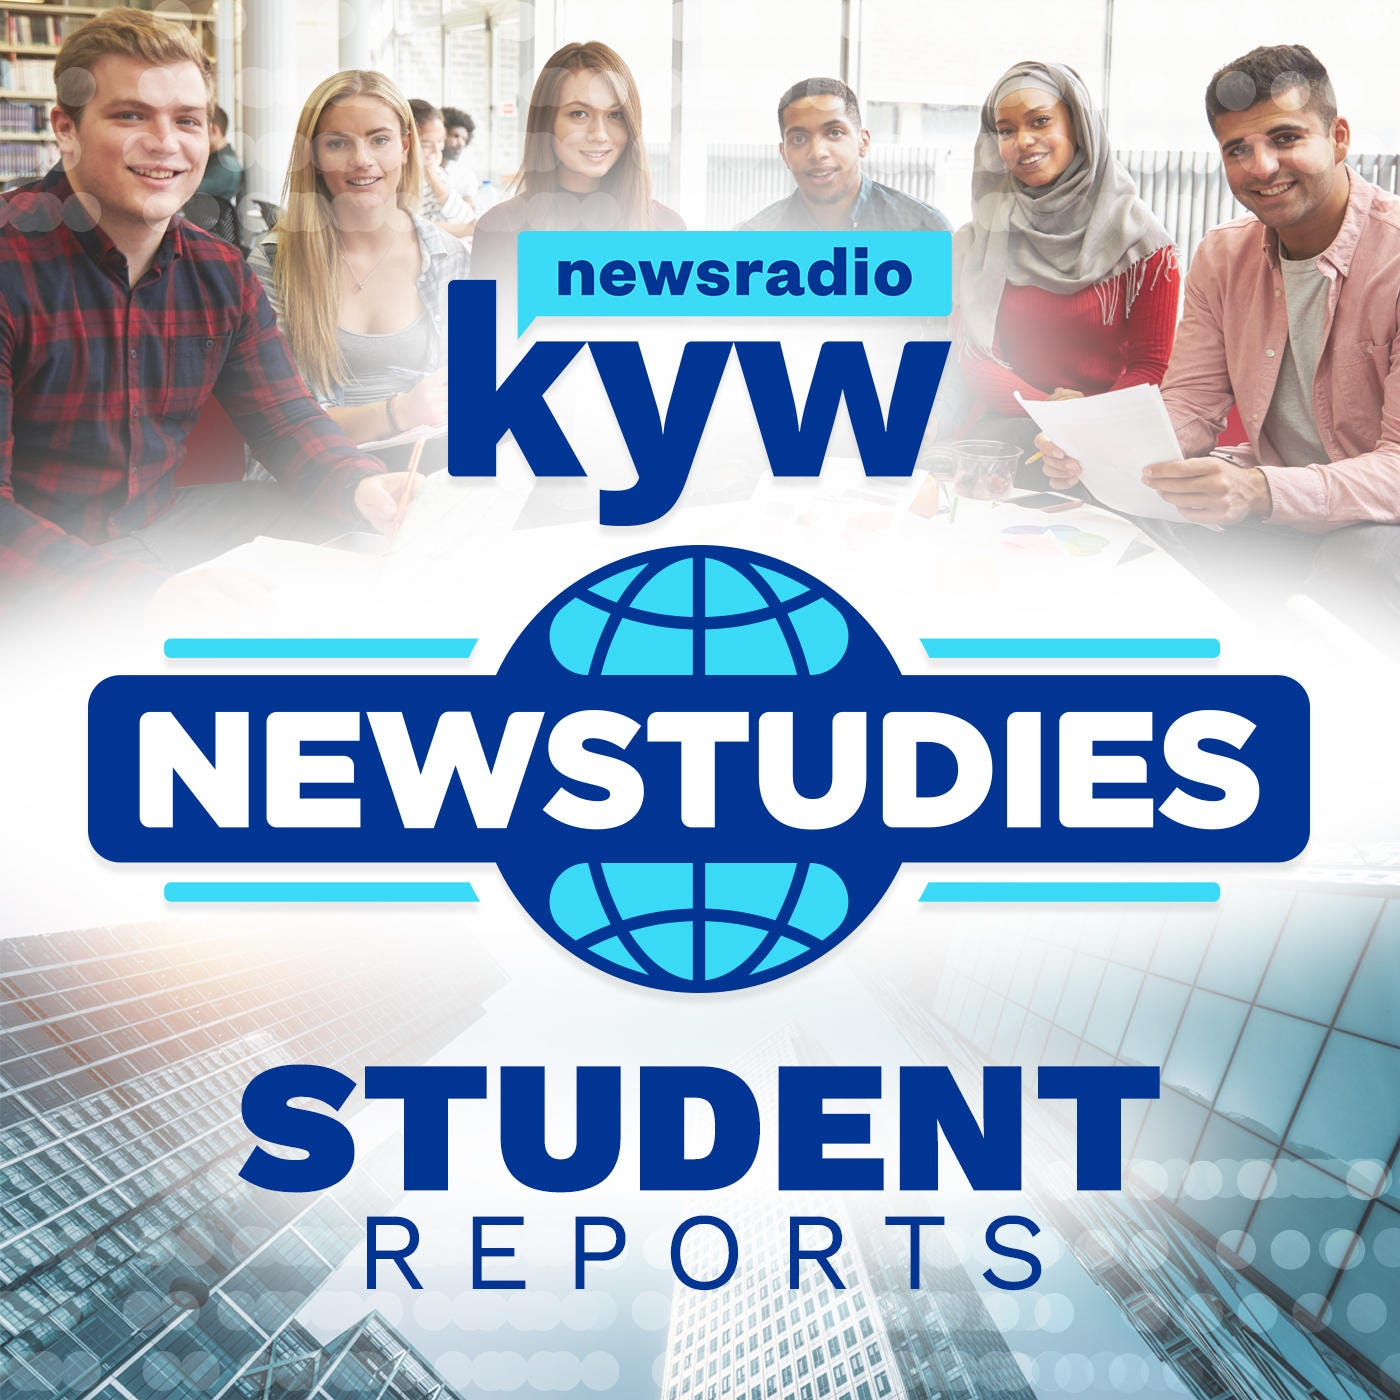 KYW Newstudies Student Reports